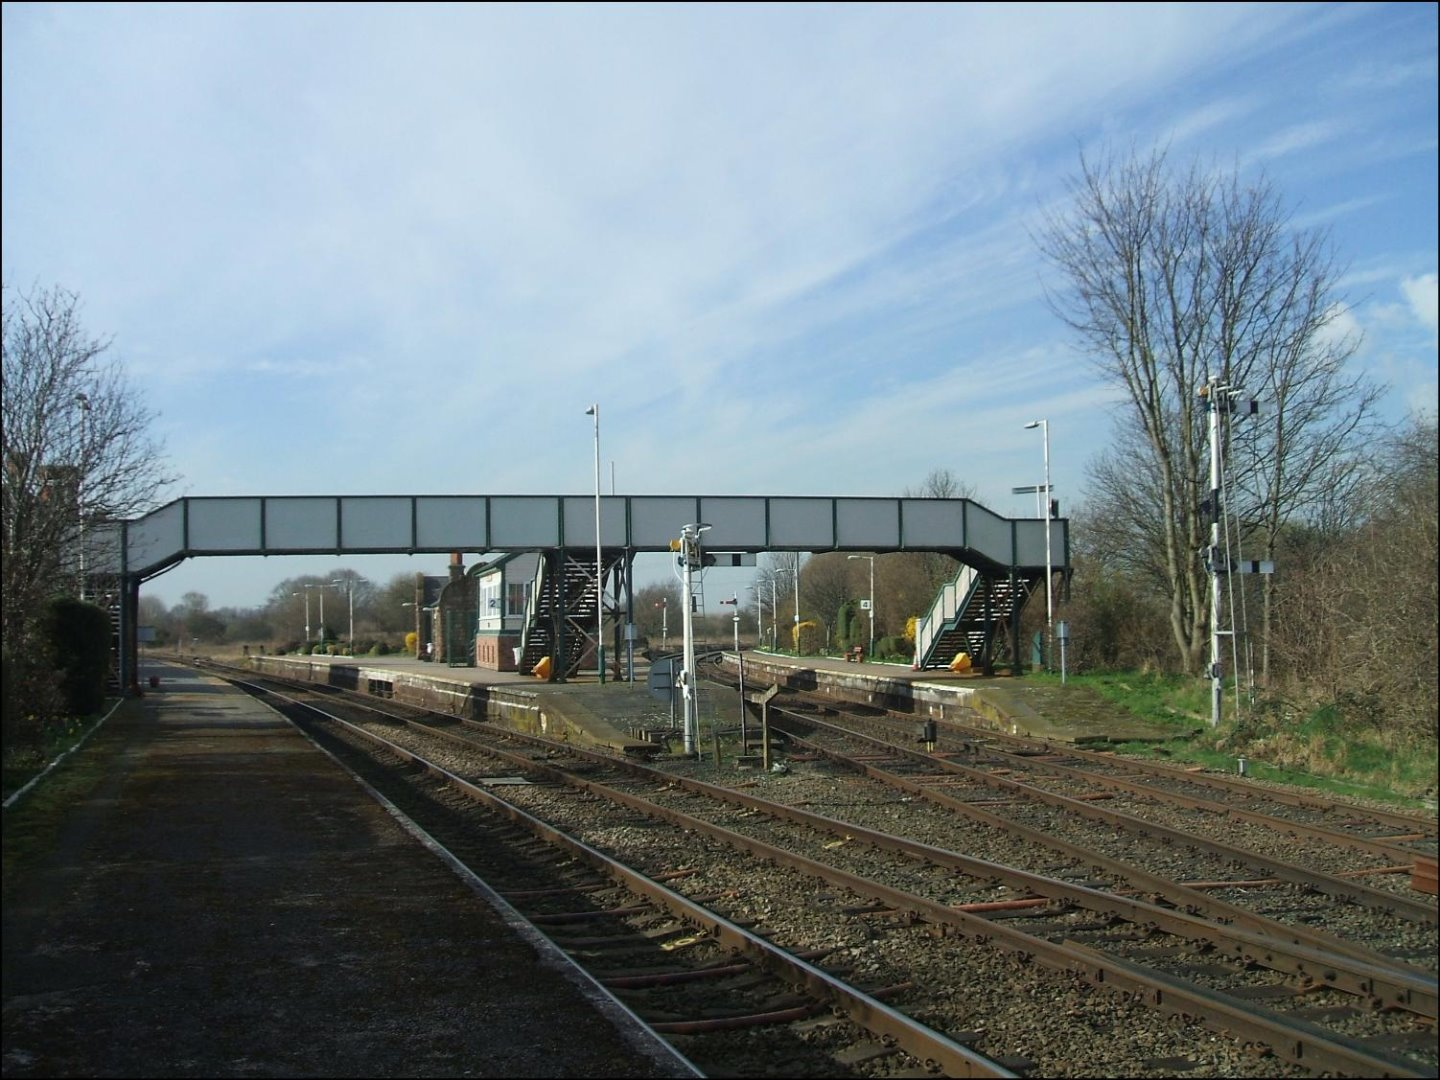 Helsby - an award winning junction station